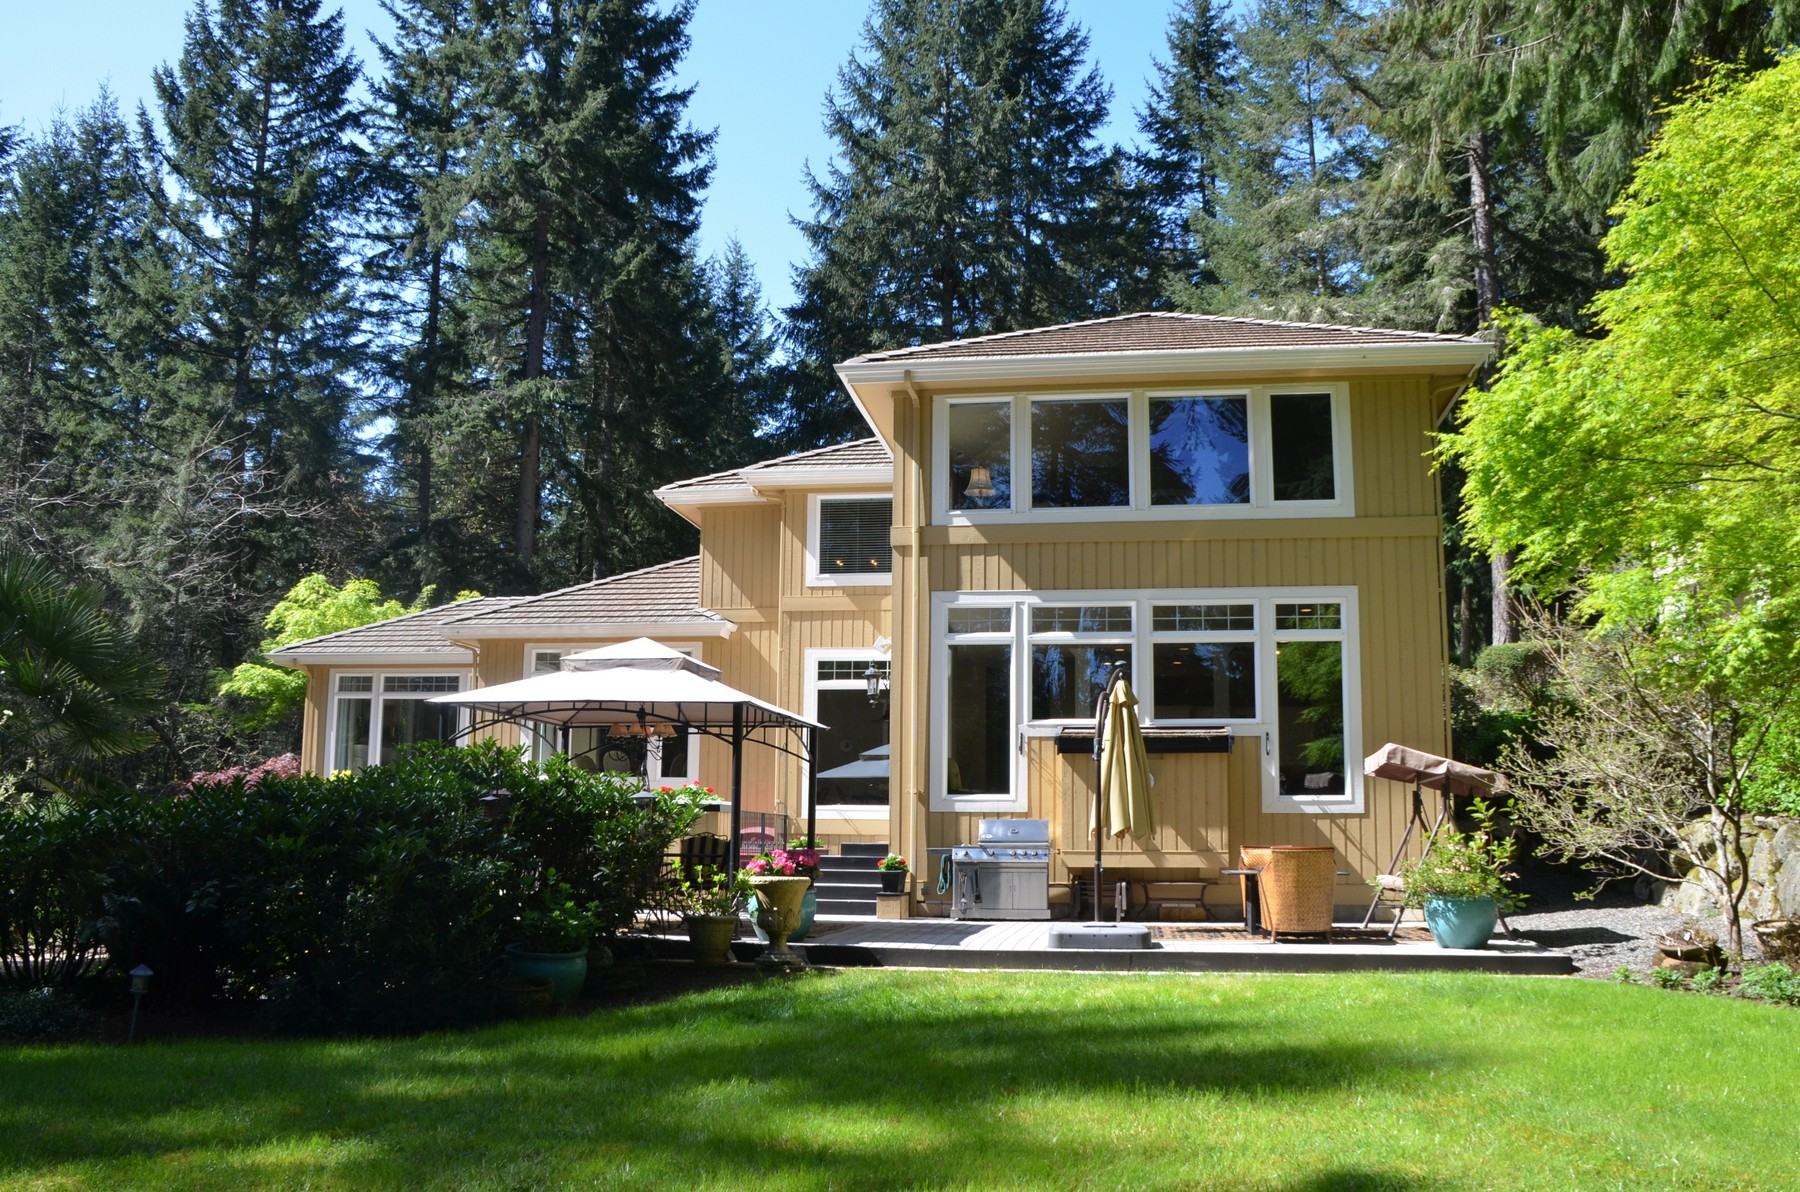 Maison unifamiliale pour l Vente à Canterwood 4824 Old Stump Dr NW Gig Harbor, Washington 98332 États-Unis